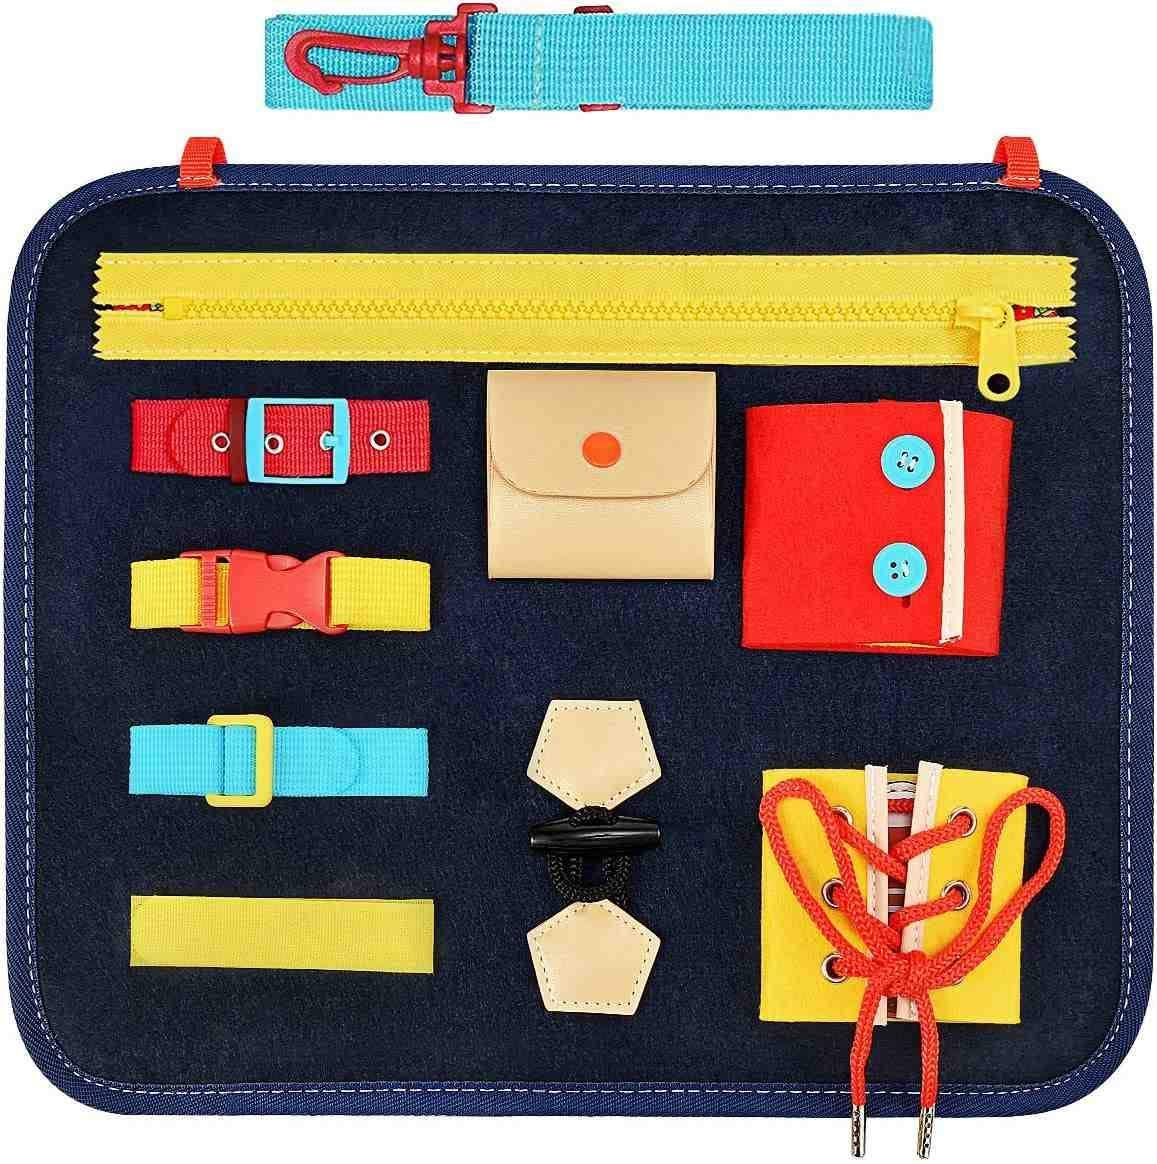 Toddler Busy Board Toy, Educational Learning Toys for Toddlers Learn Skills, Learning Board with Zippers, Buttons, Buckles, Braids Suitable for 1 2 3 4 Year Old Toddlers